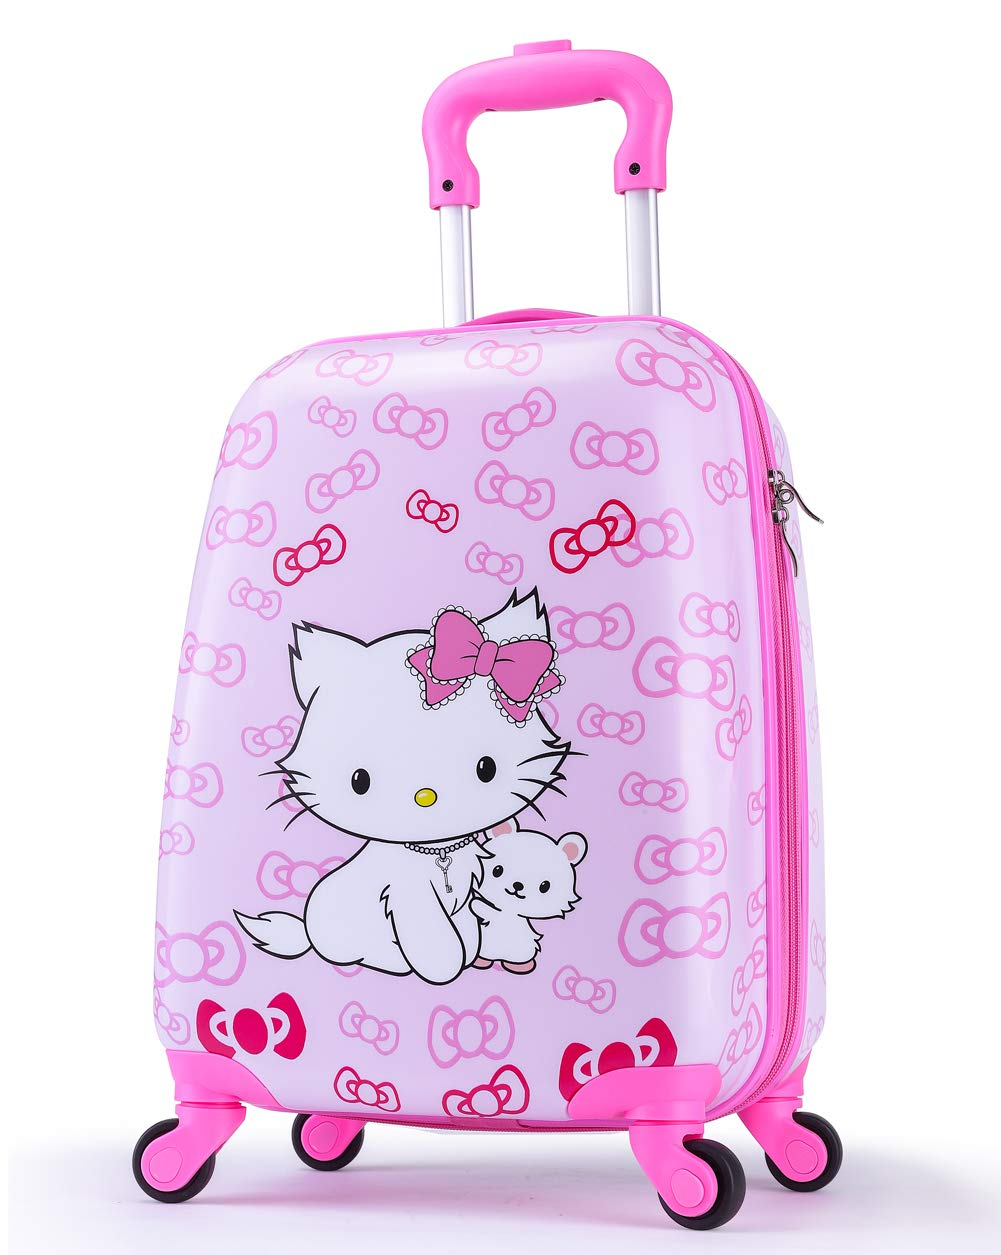 Boys Luggage Anti-scratch Suitcase 19in Hardshell Spinner Carry on PC+ABS Elephant LeLeTian